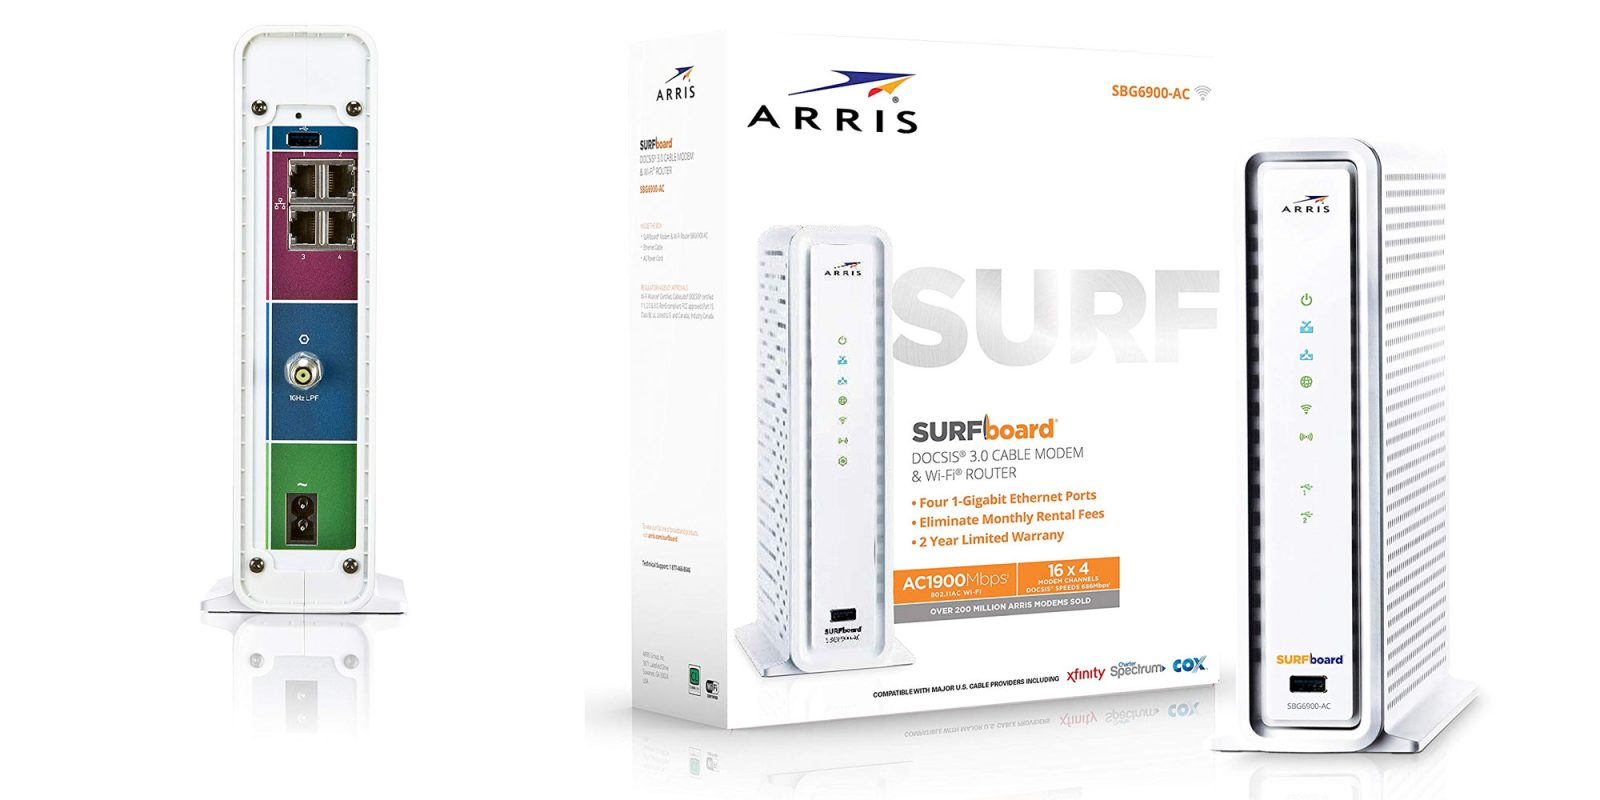 Save up to $120/year w/ a DOCSIS 3.0 modem & 802.11ac router: $92 (Reg. $160)